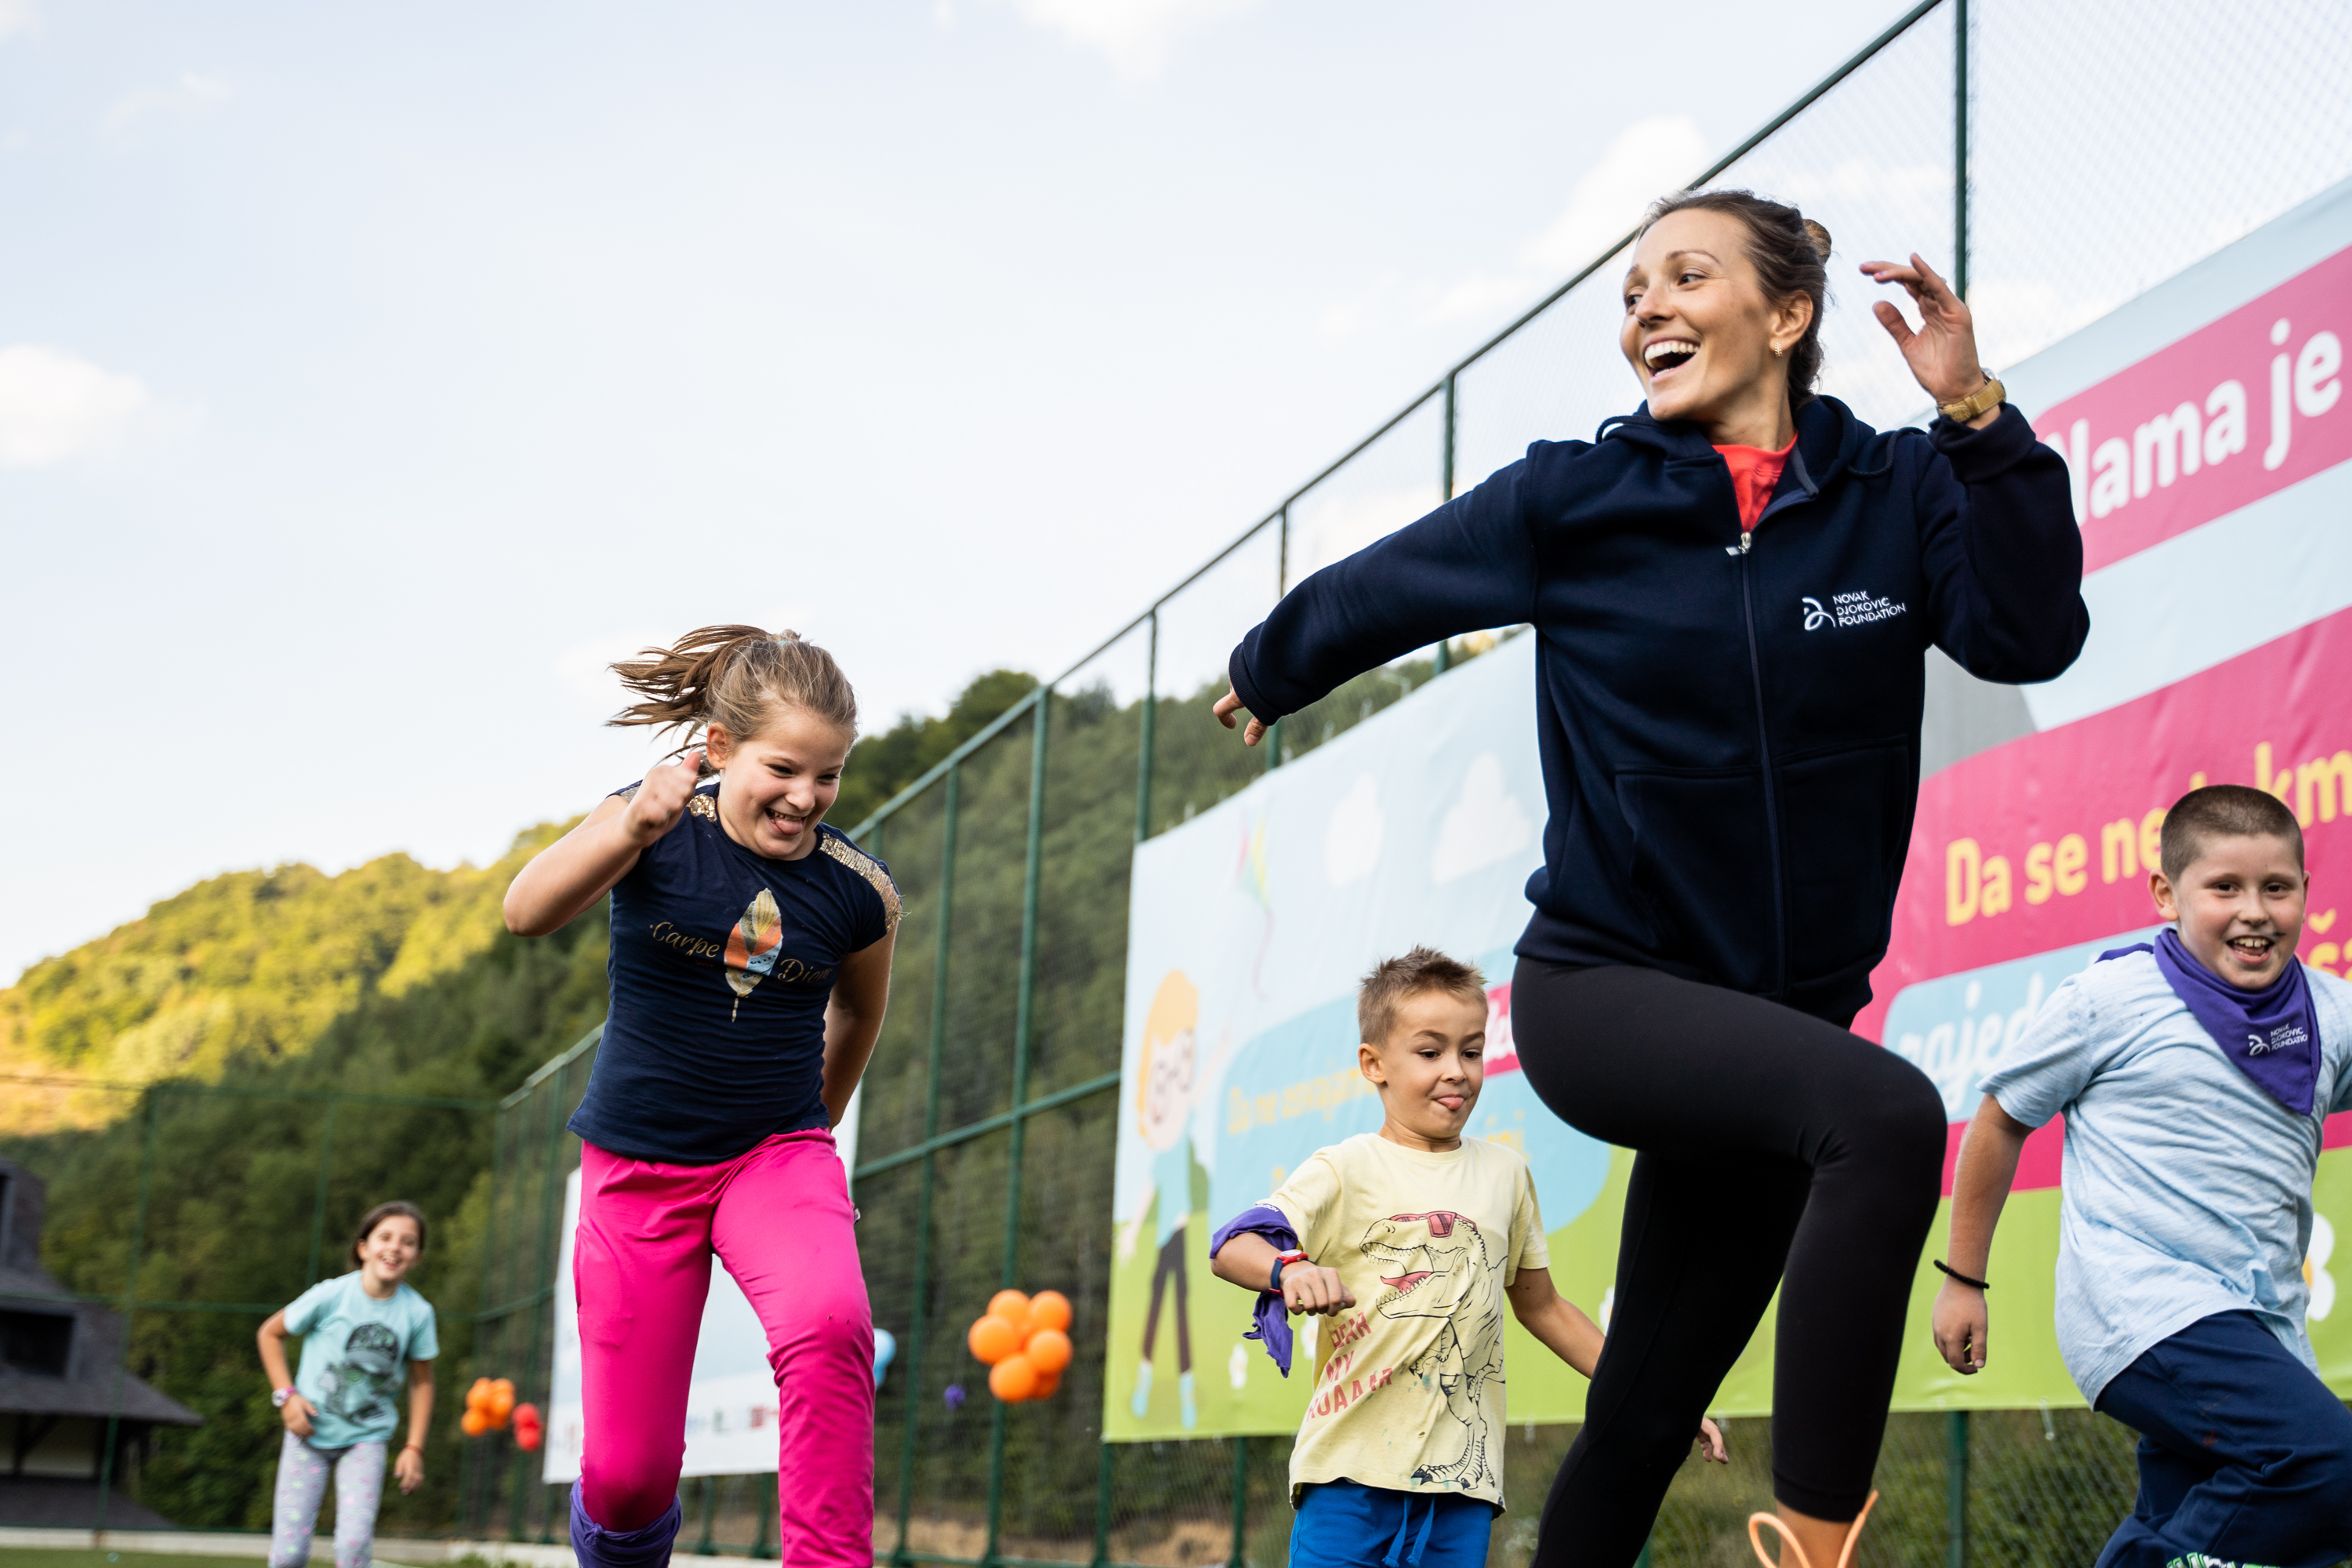 Our founders, Novak and Jelena Djokovic opened the Friendship Games and joined children in their activities.